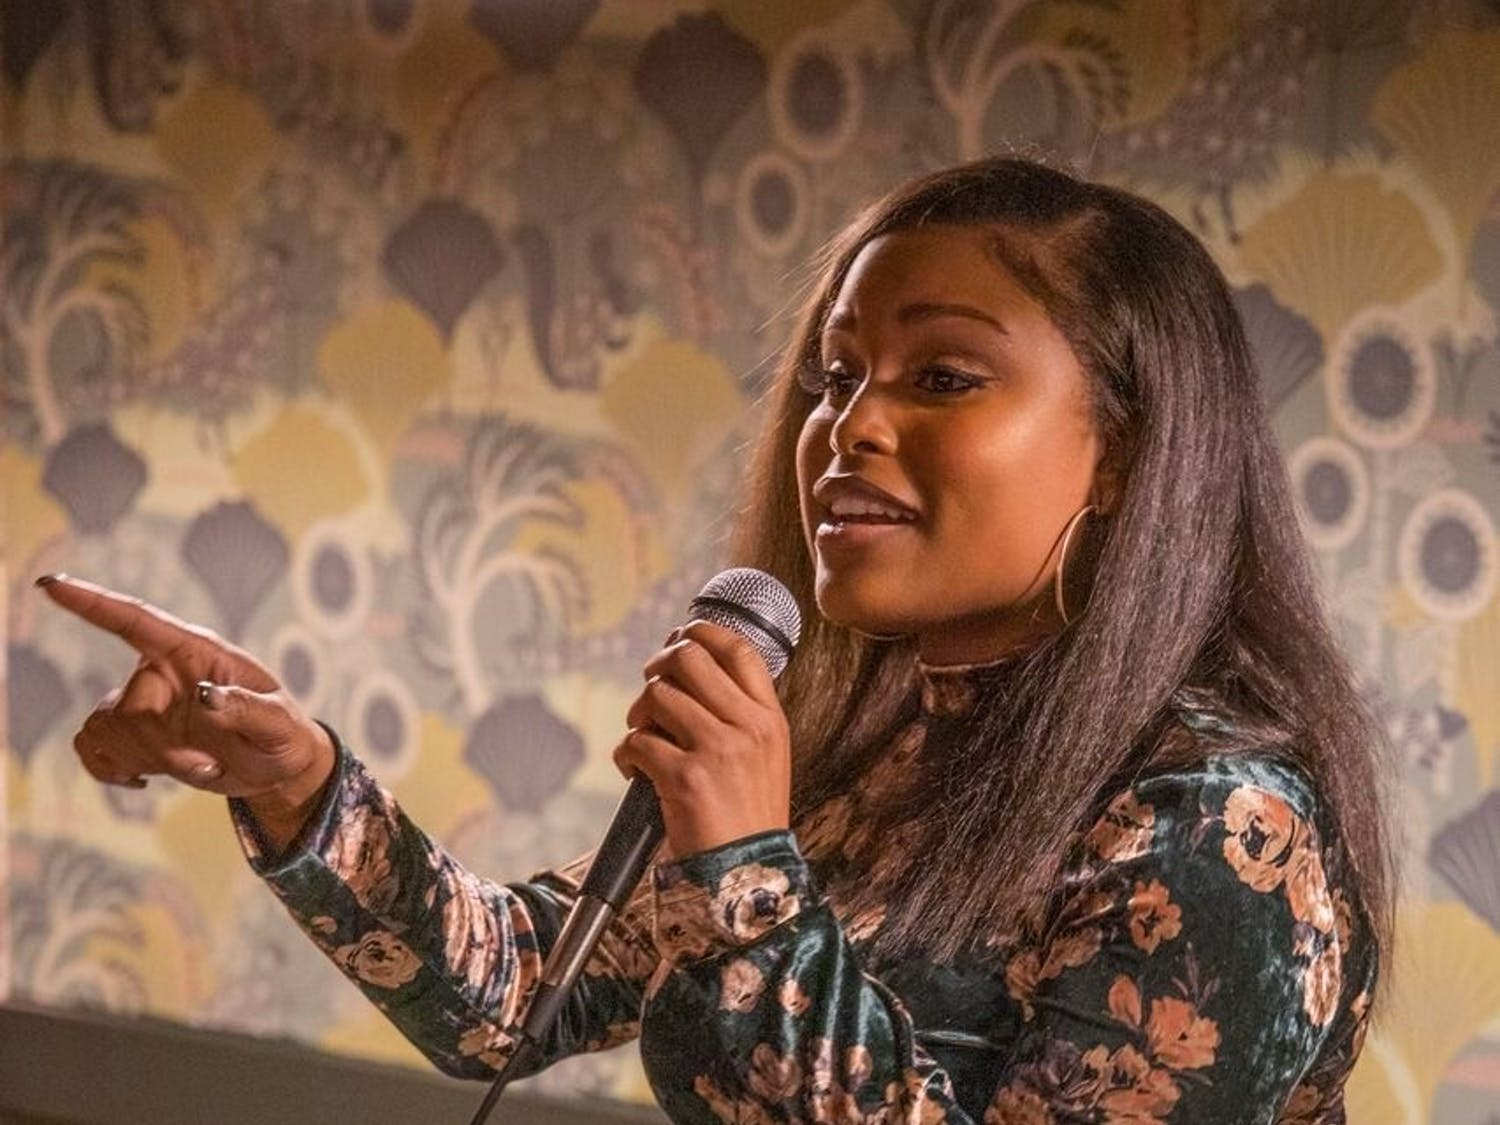 Senior Tyla Gomez performs at the bitter/sweet comedy show at Epilogue Books Chocolate Brews on Thursday, Nov. 14, 2019.